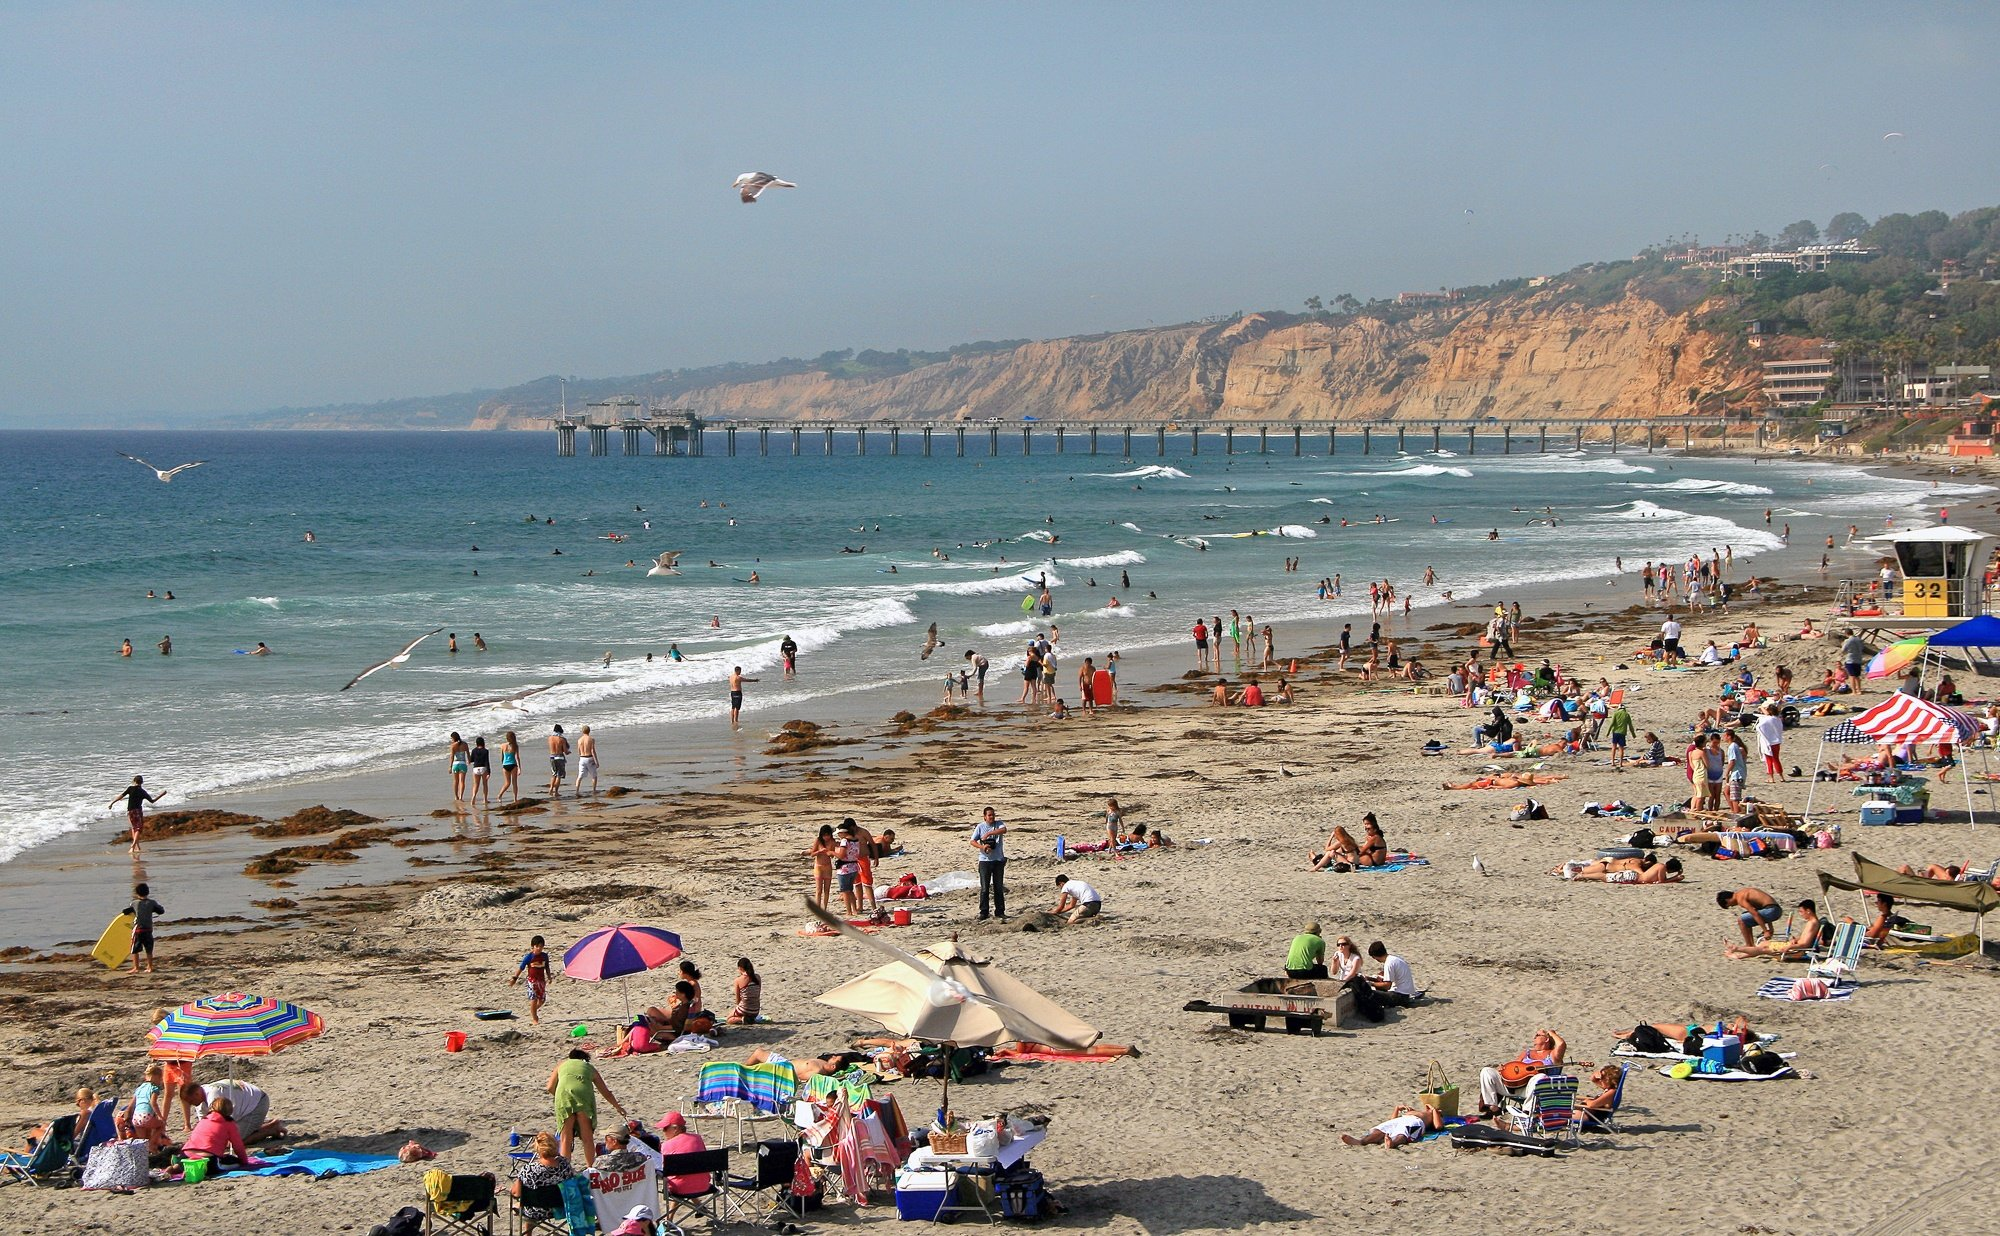 La Jolla Shores Beach in San Diego County